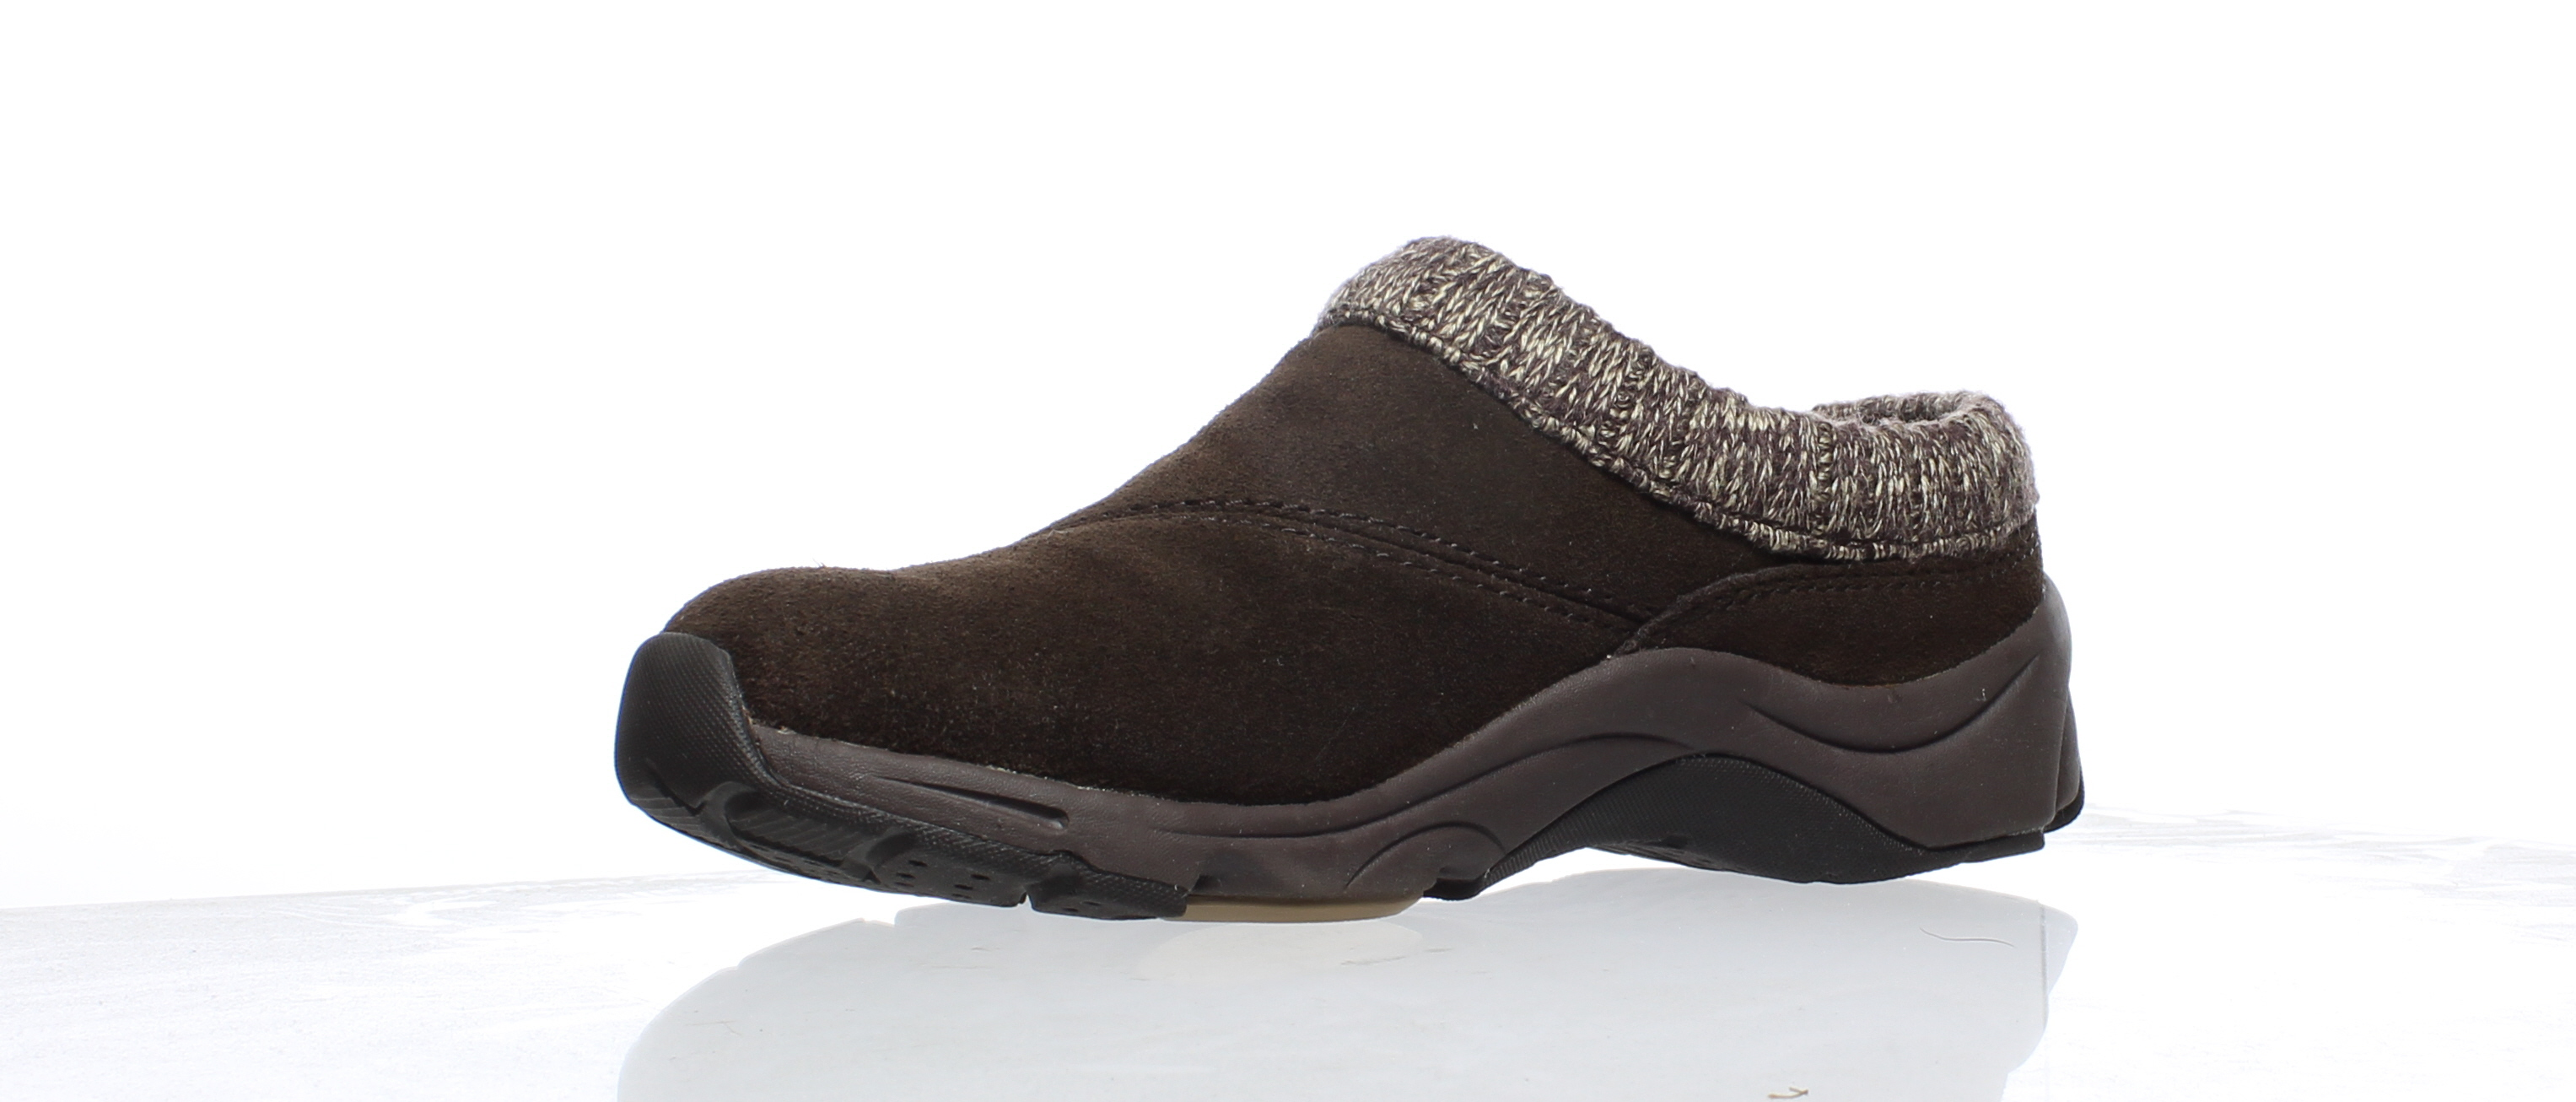 Vionic-Womens-Action-Arbor-Suede-Leather-Casual-Comfort-Clogs thumbnail 10